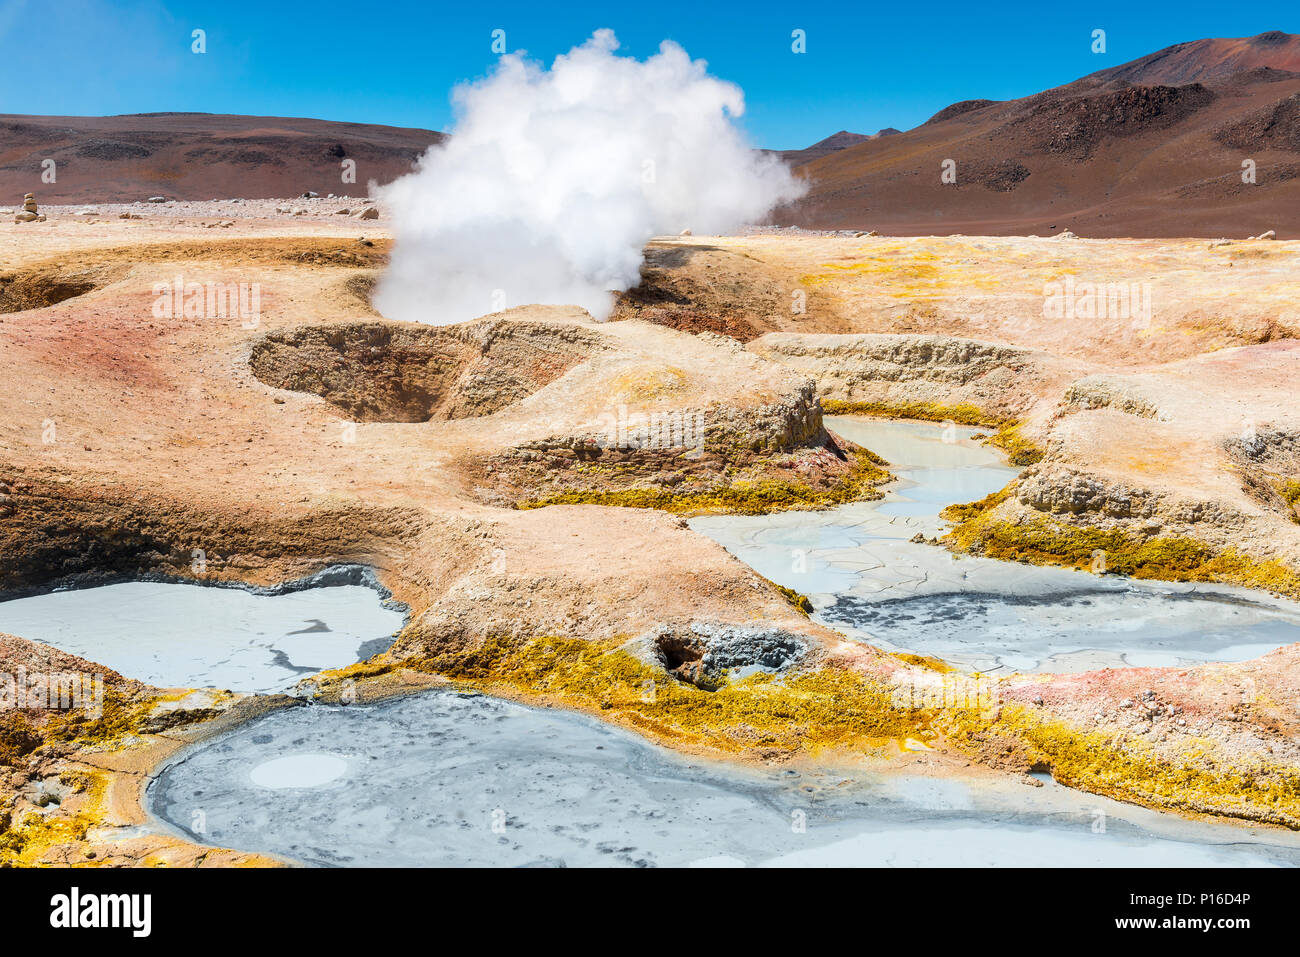 The geothermal and volcanic activity of Sol de Manana in the Eduardo Avaroa Reserve between the Uyuni Salt Flat and the Atacama desert, Bolivia. - Stock Image